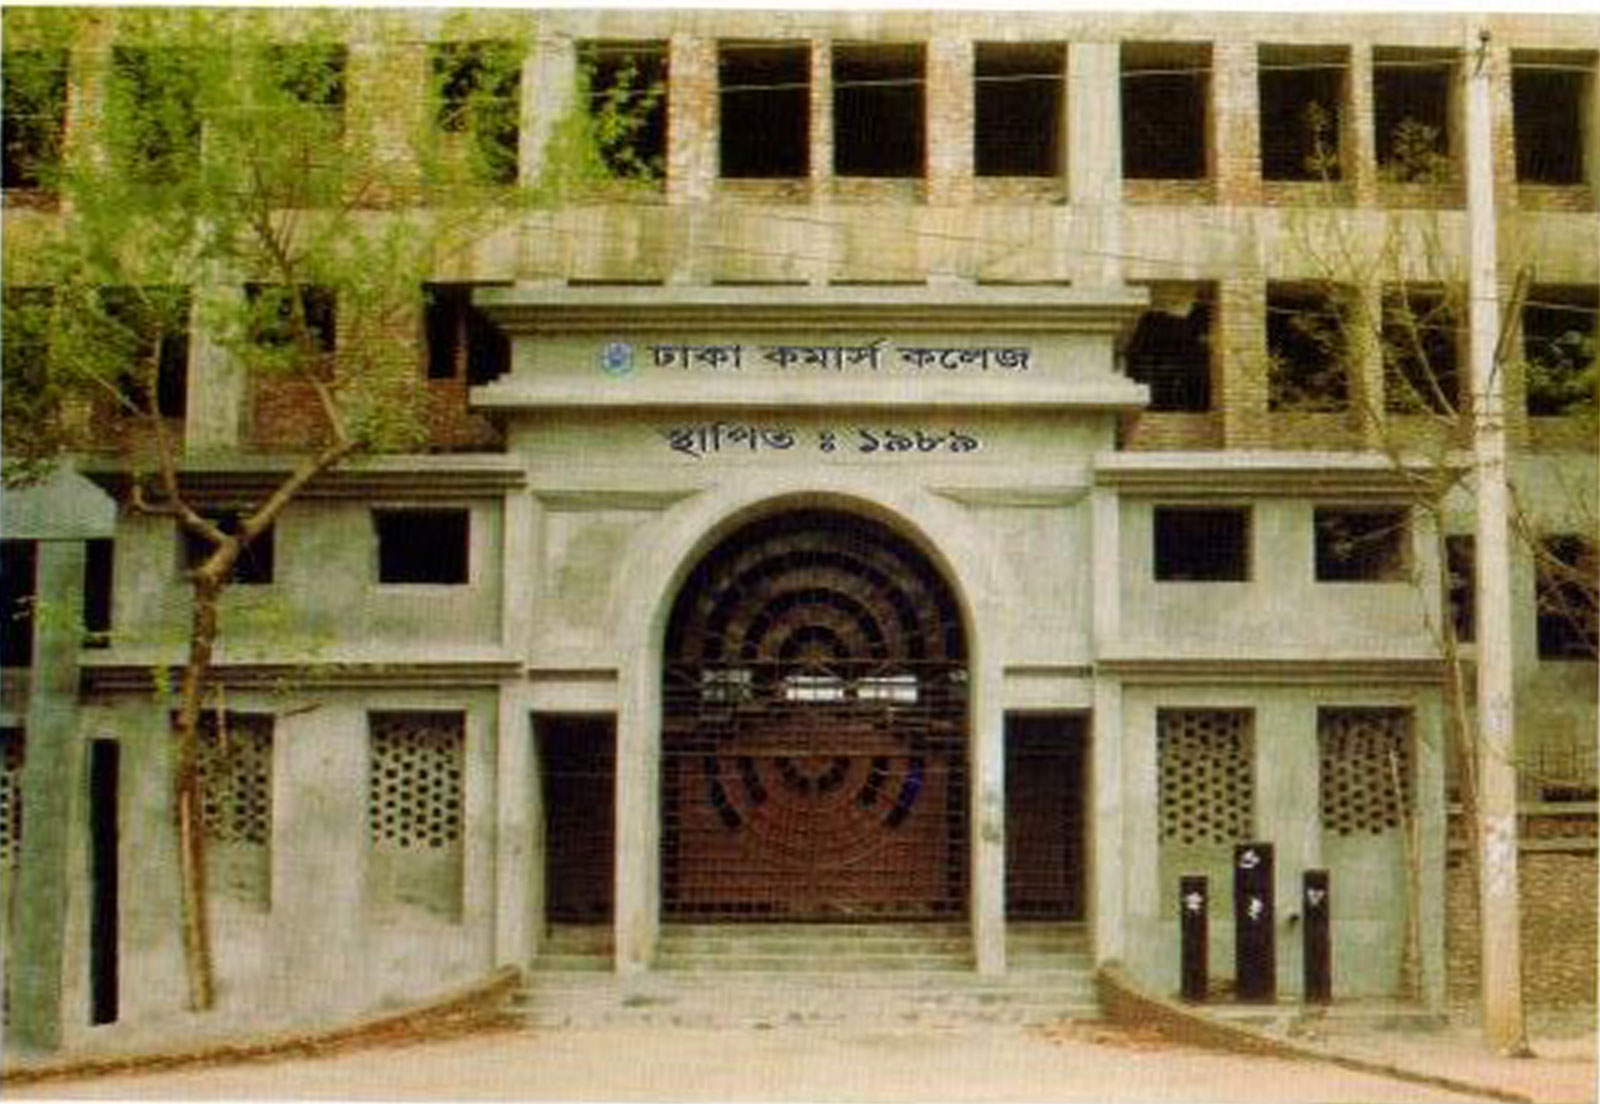 History of Dhaka Commerce College